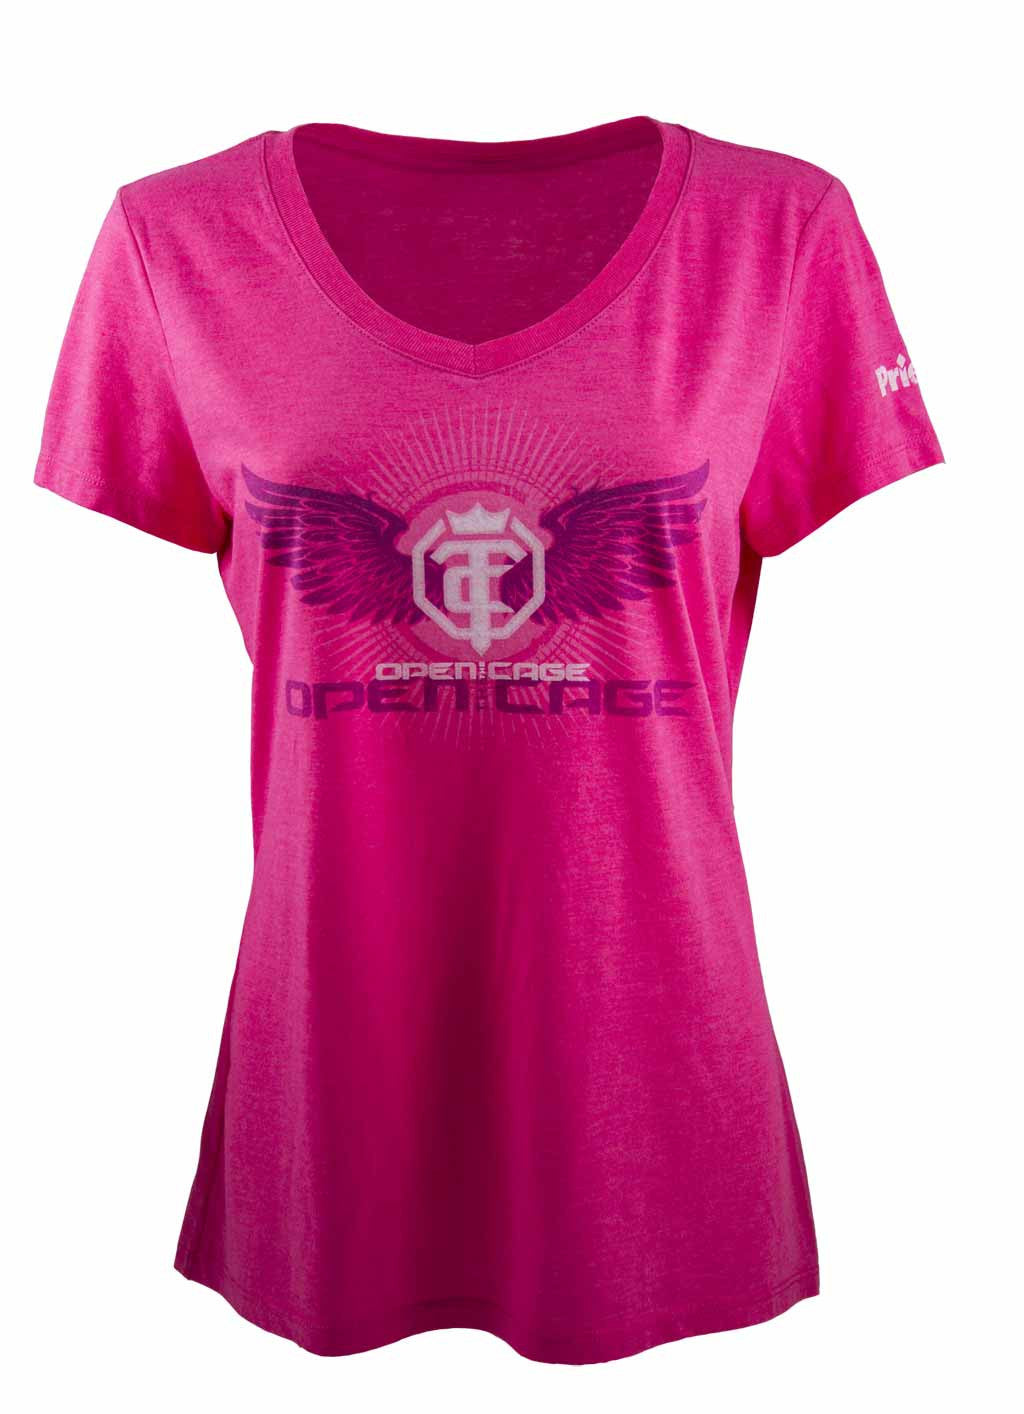 Open The Cage - Priefert - Ladies' Lady Hawk Tee Shirt - Pink